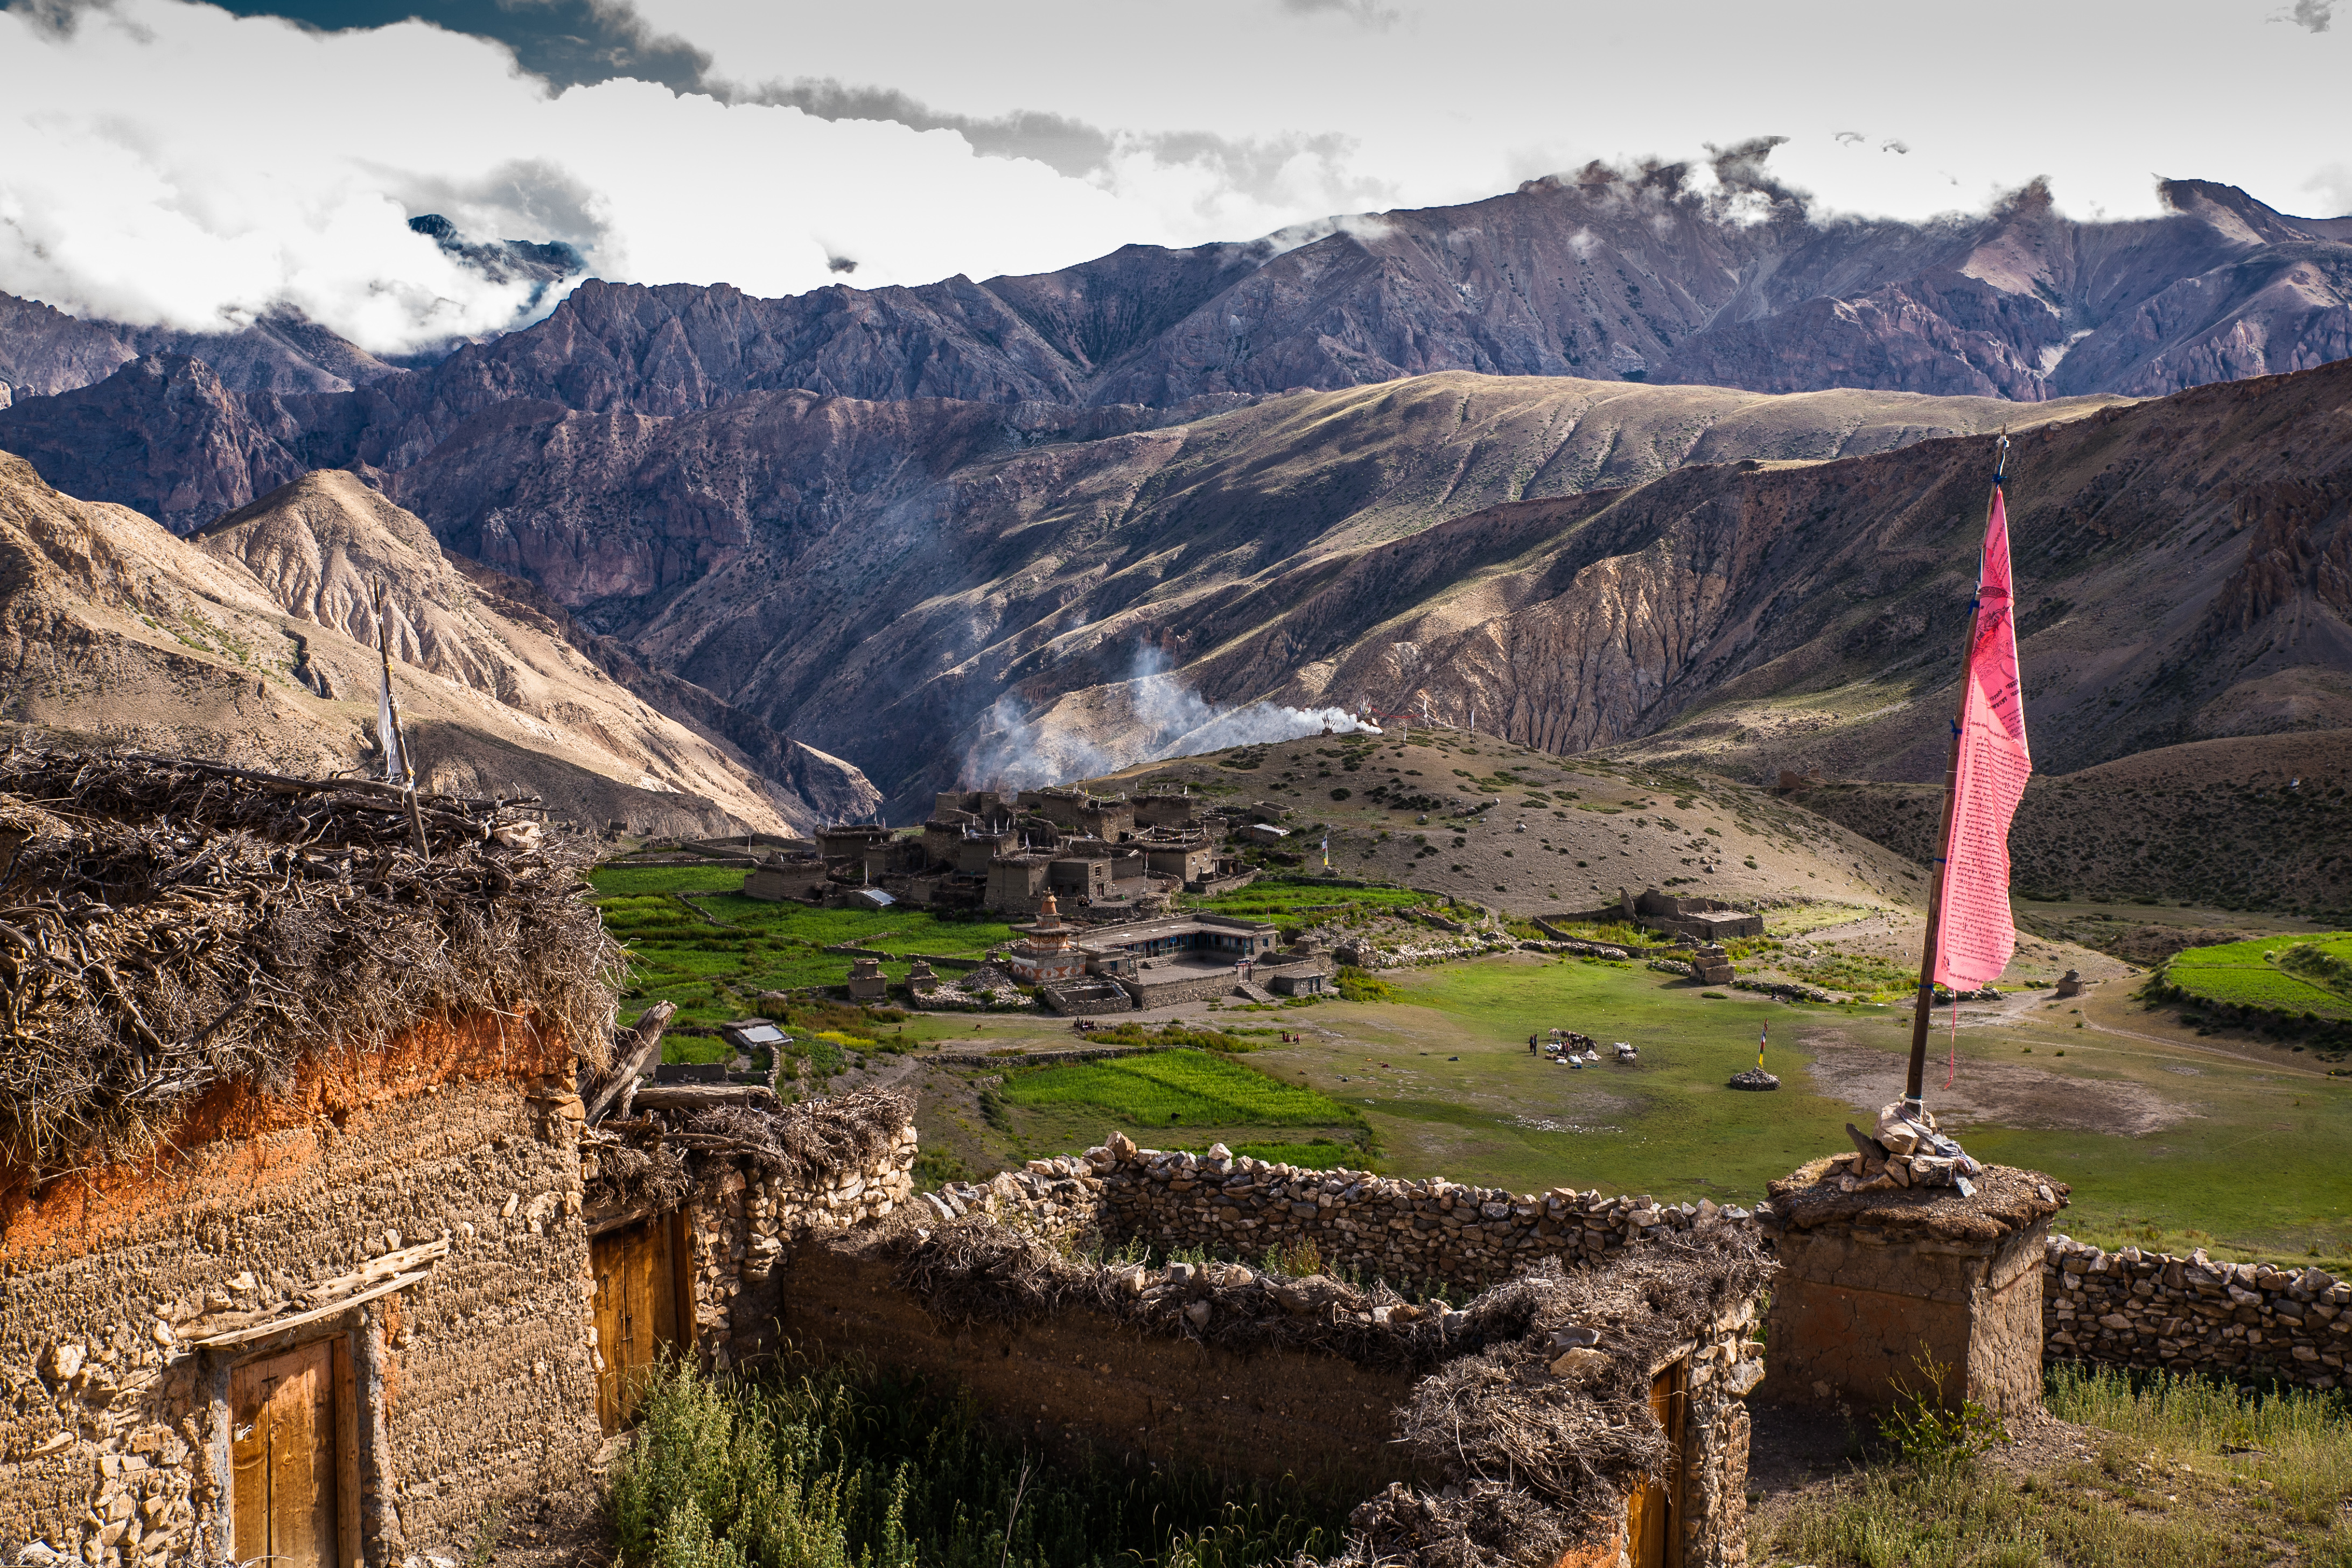 upper dolpo trek - Khomagaon by ErWin - By Mountain People